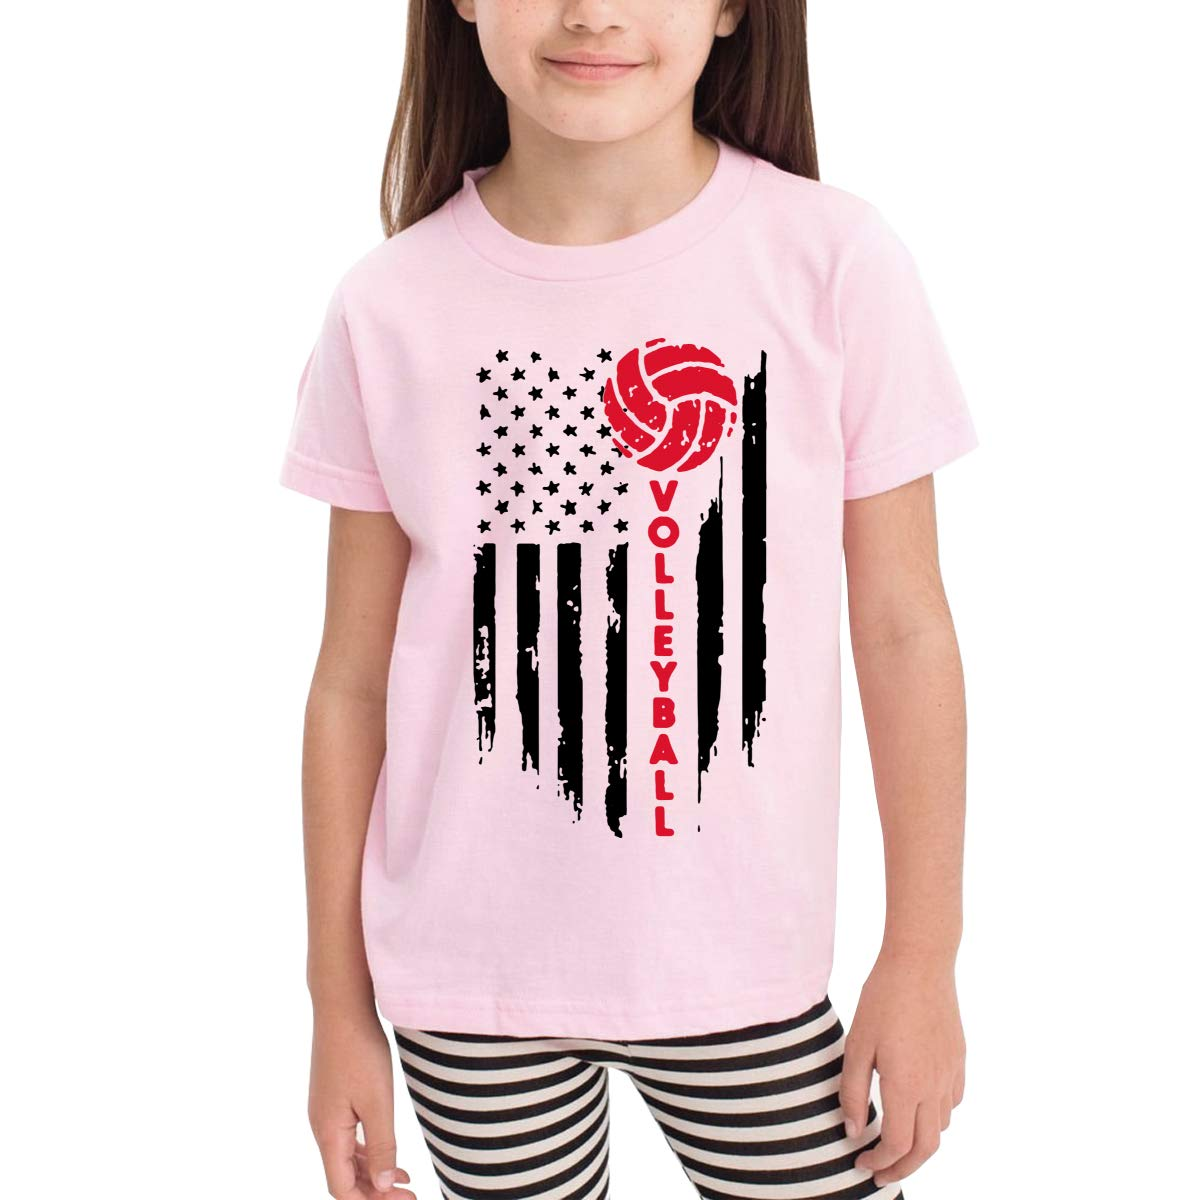 Vy91Lk-8 Short Sleeve Volleyball American Flag T-Shirts for Girls 2-6T Ruffled Sweatshirt